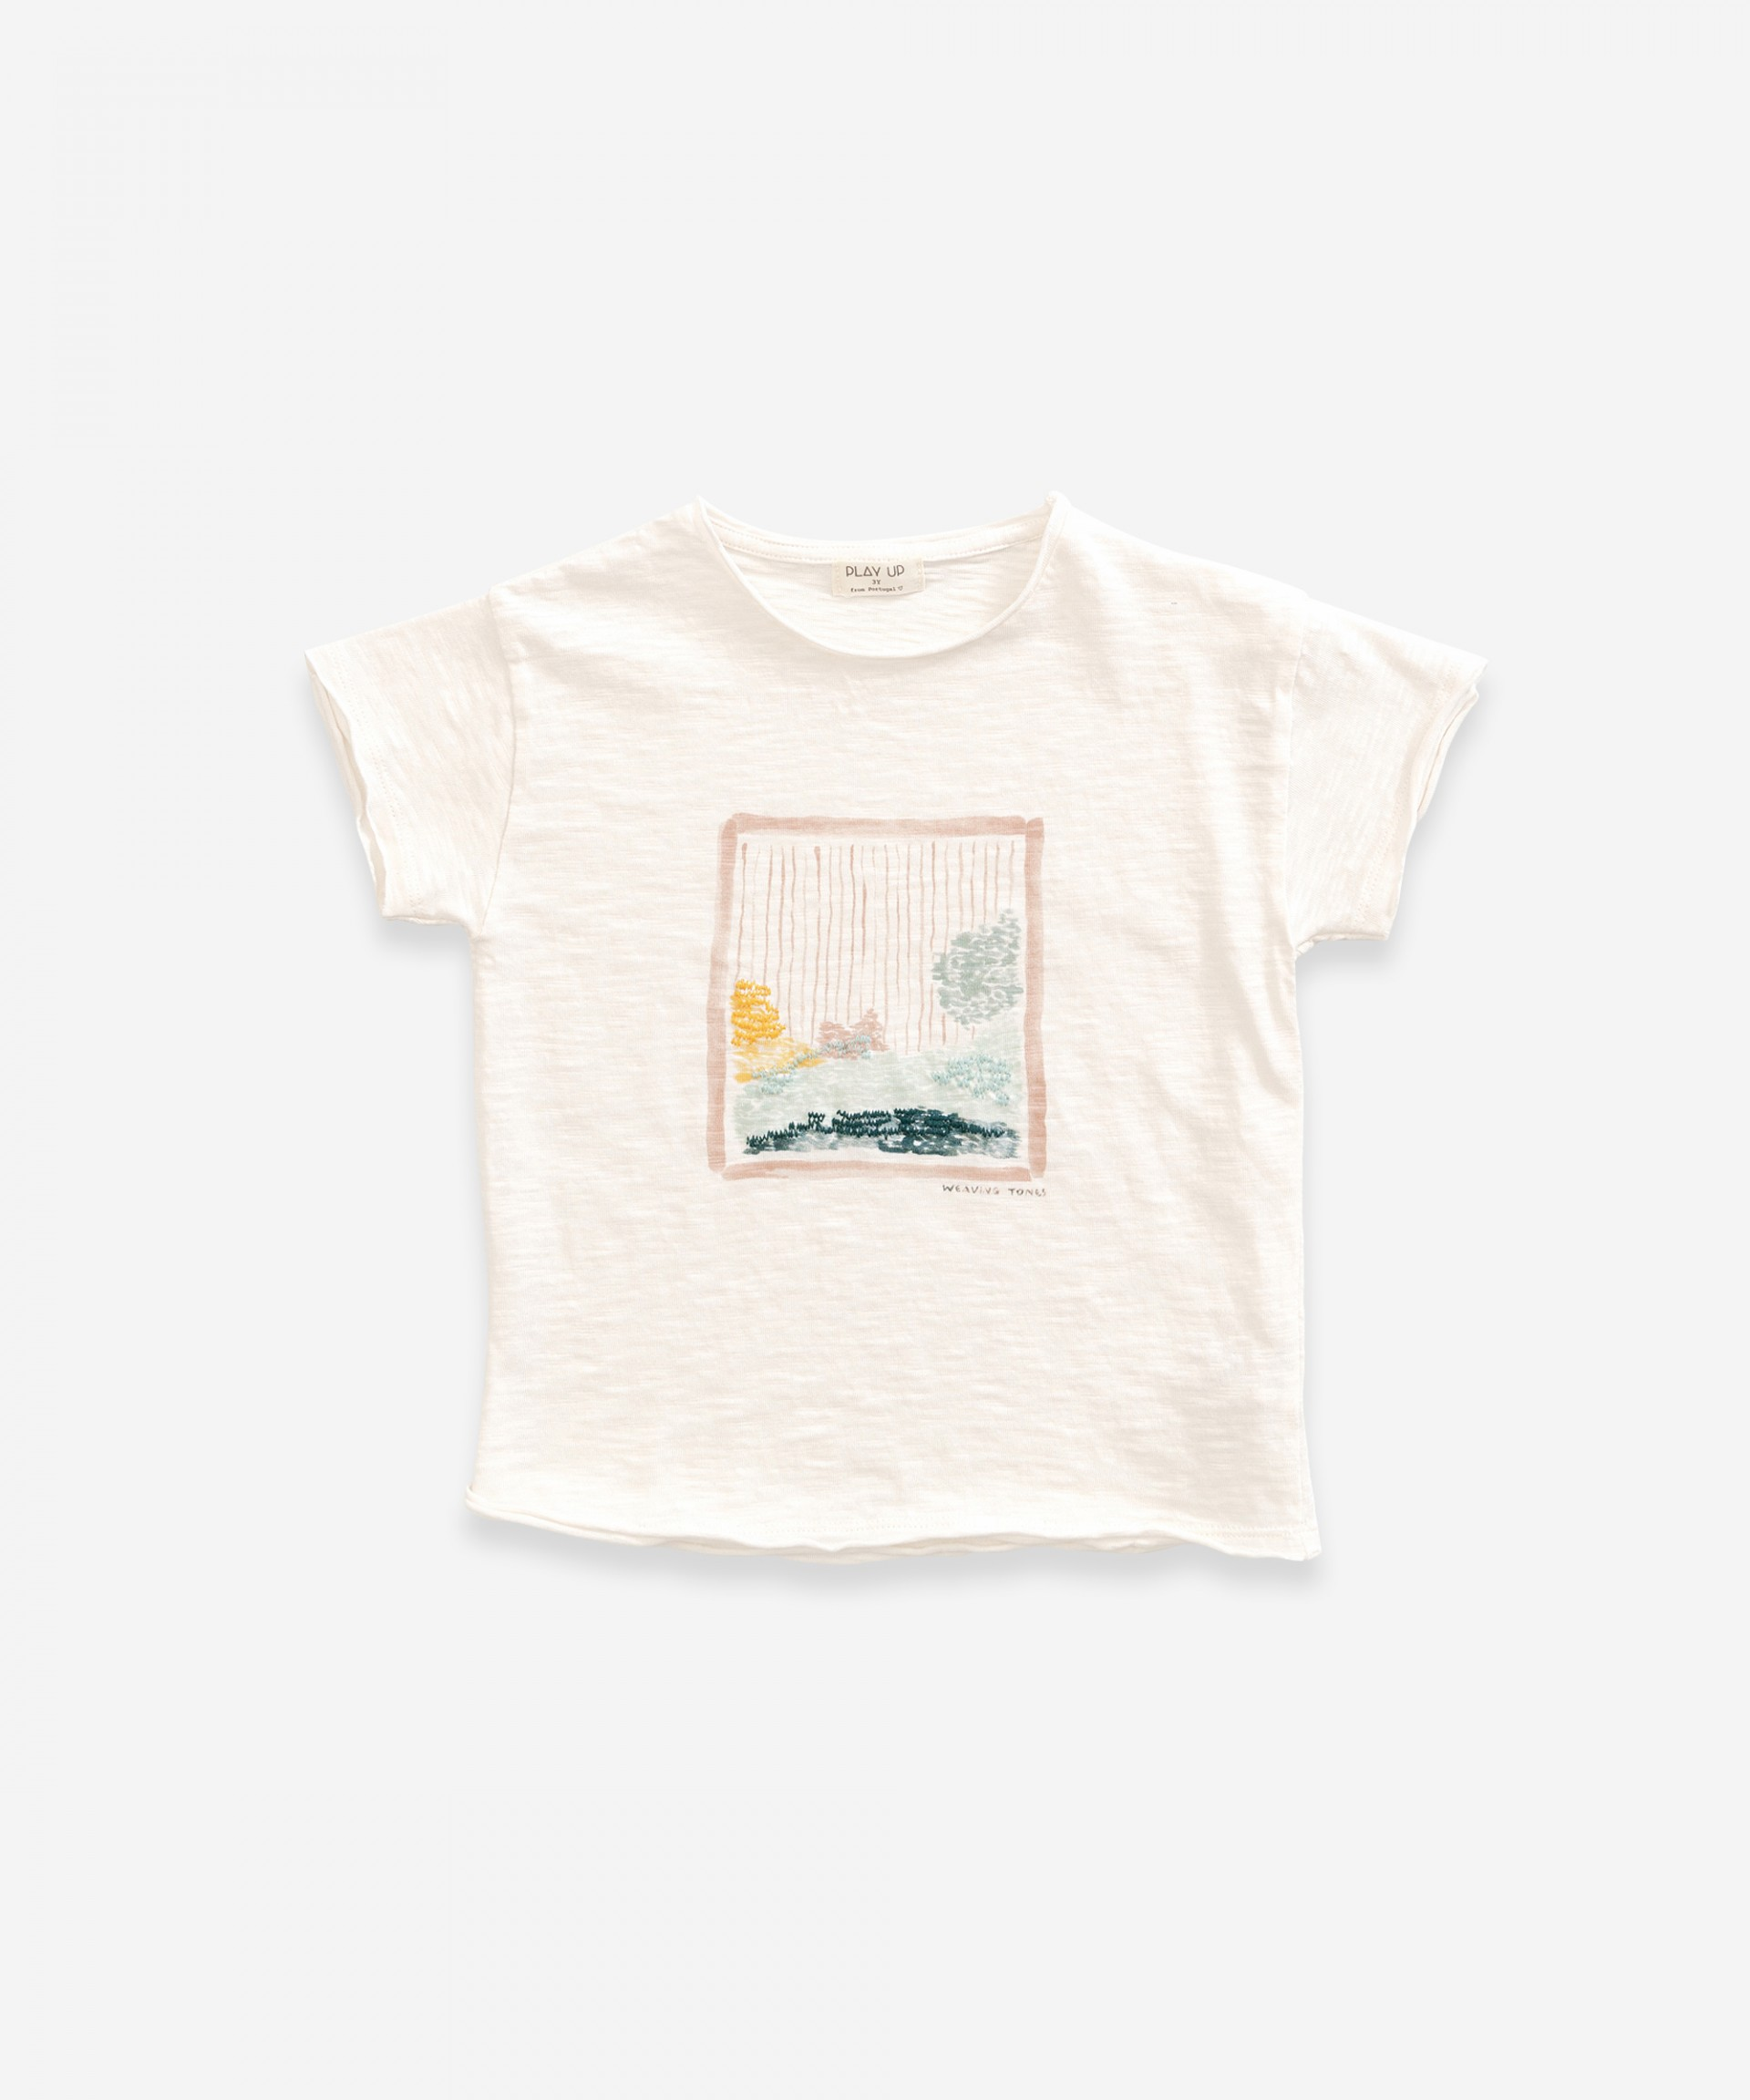 T-shirt in organic cotton with print | Weaving